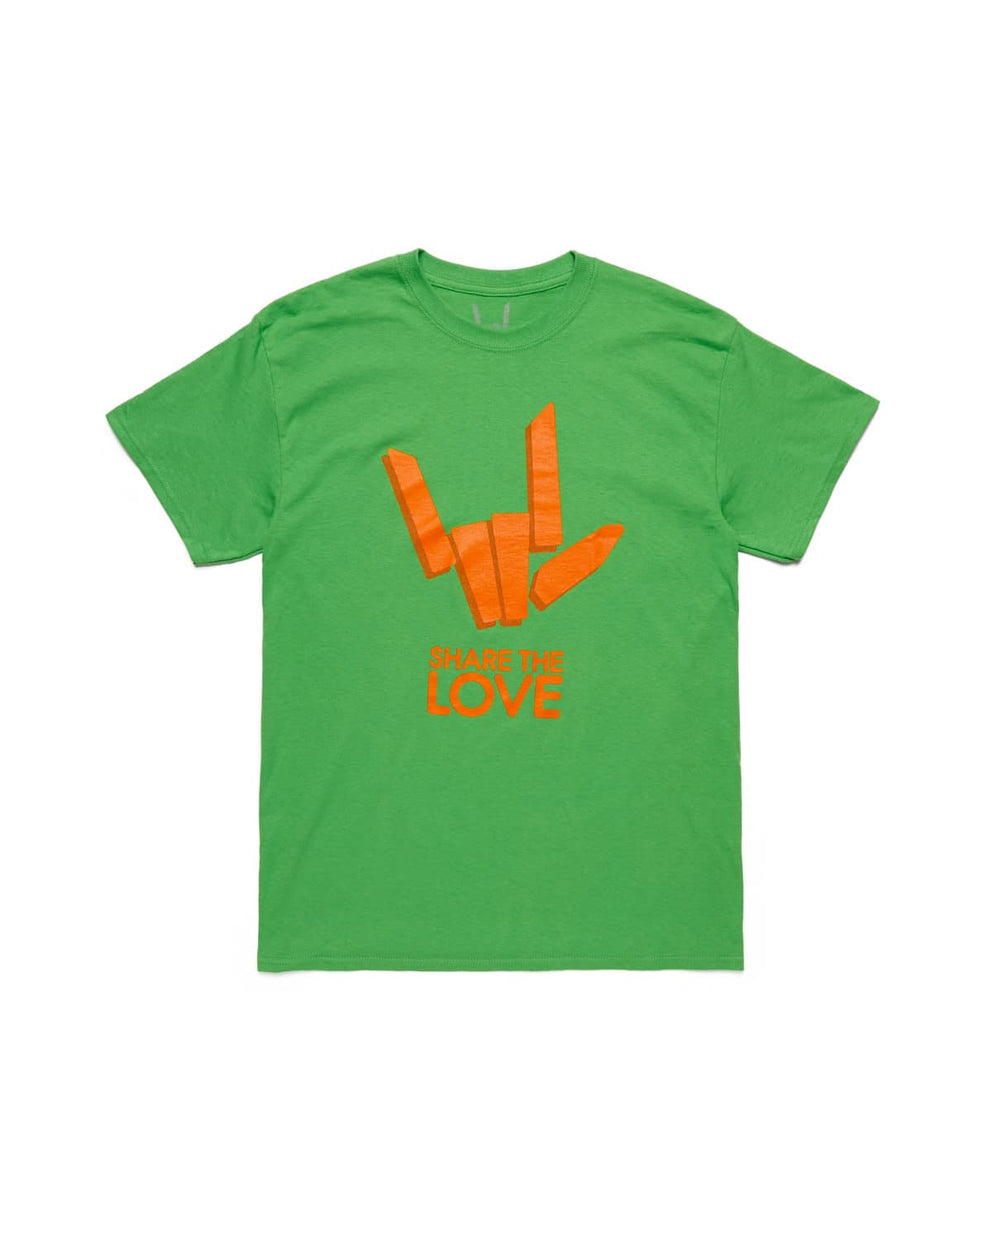 'Share The Love' Tee - Electric Green